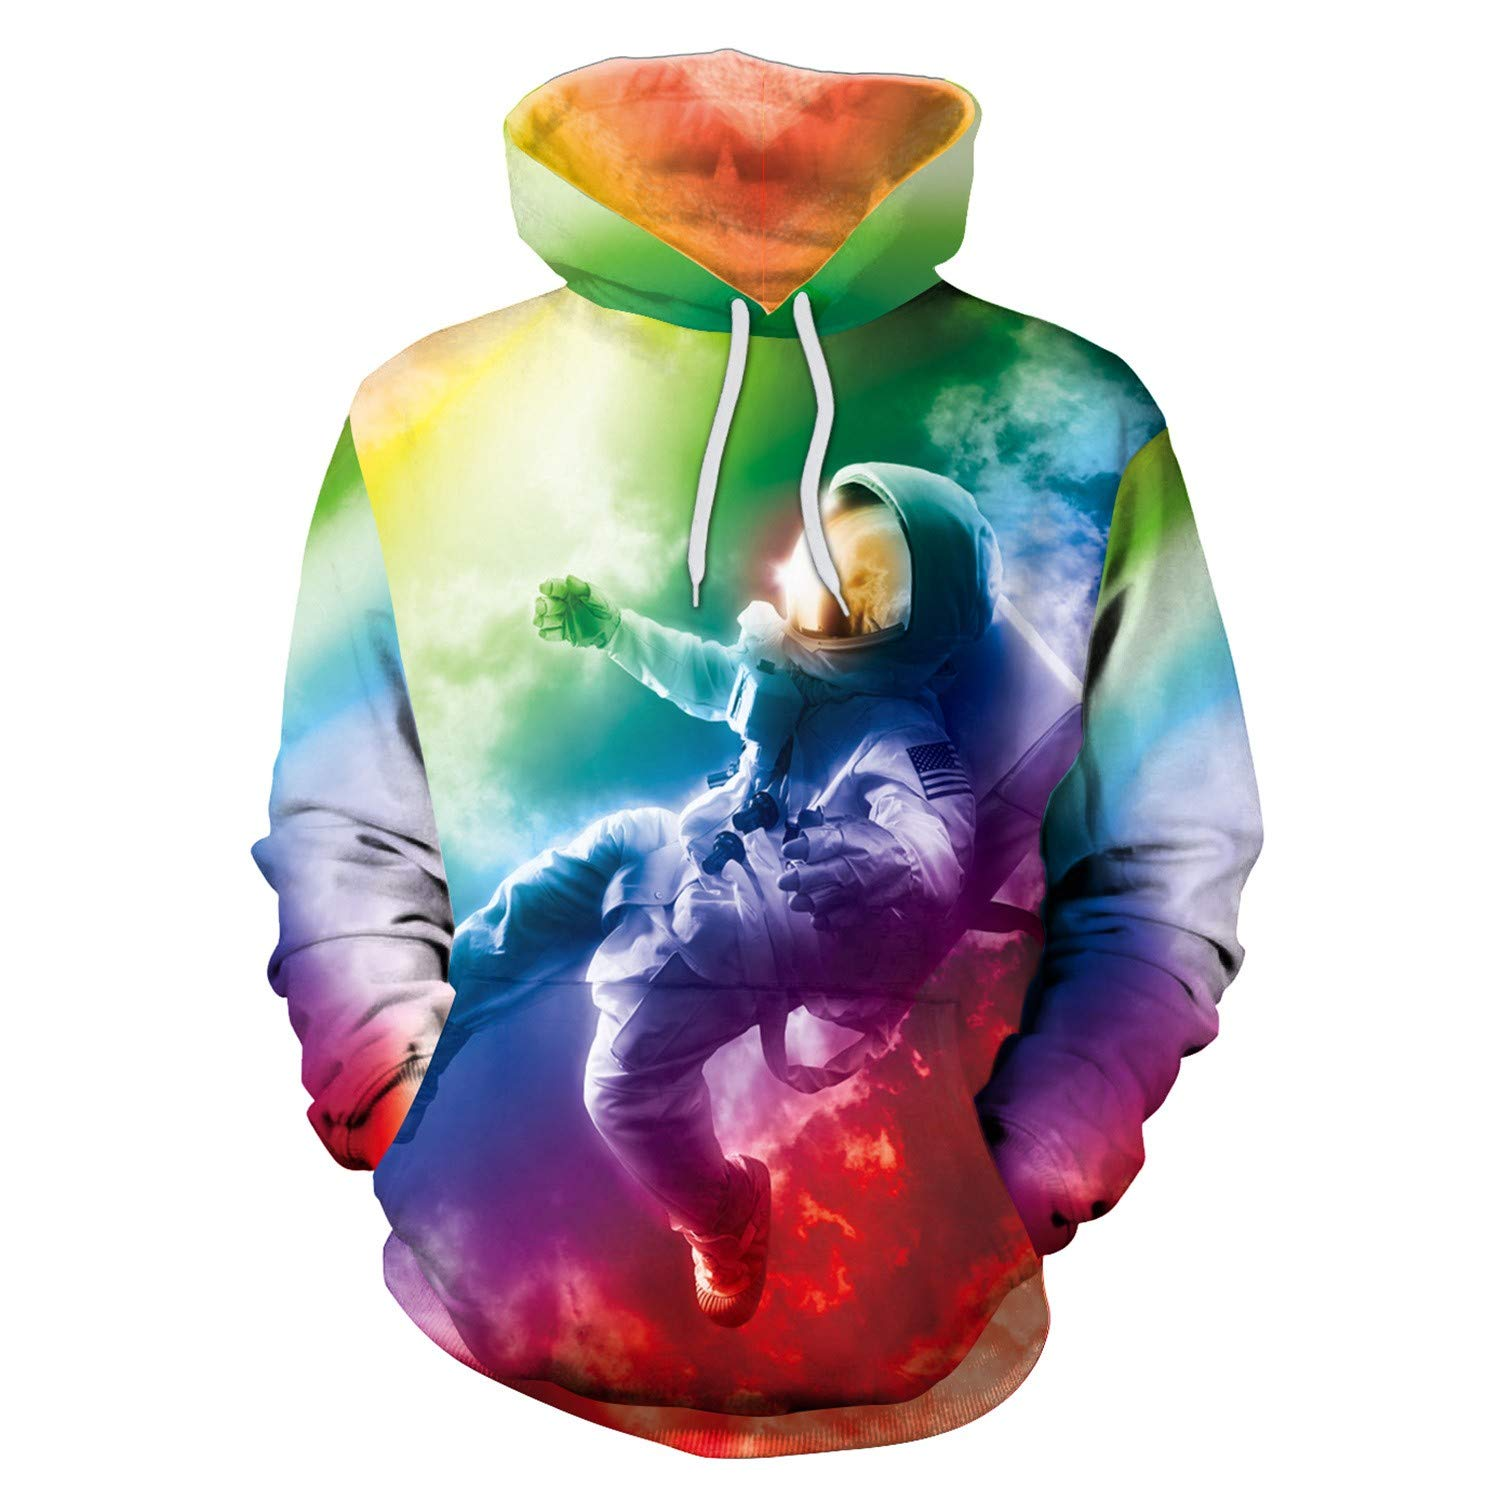 TCLY-FBY Unisex 3D Print Hoodie Novelty Pullover Color Pattern Sweatshirt Pocket Drawstring S-3XL